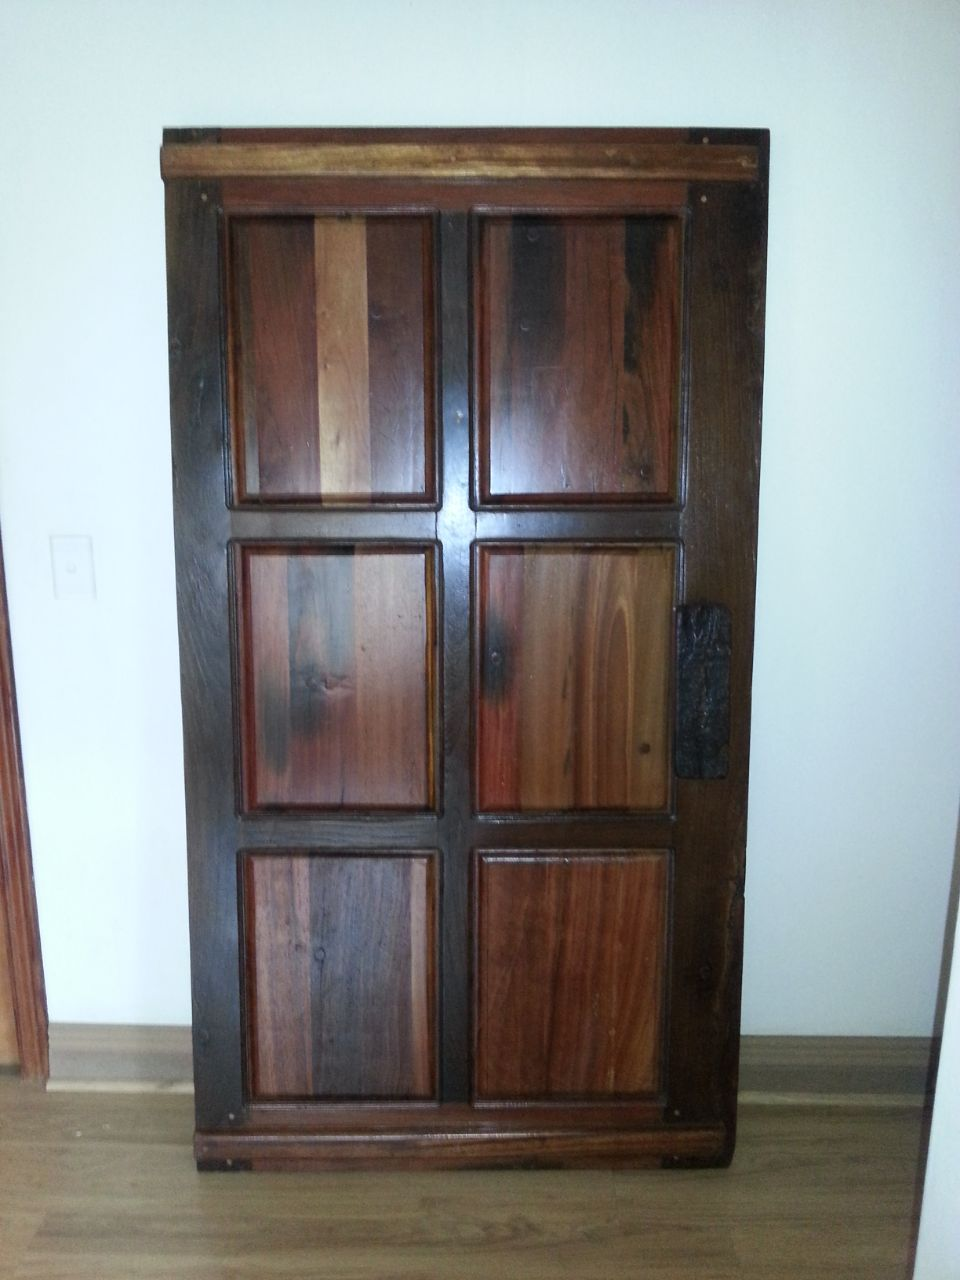 Authentic sleeperwood door